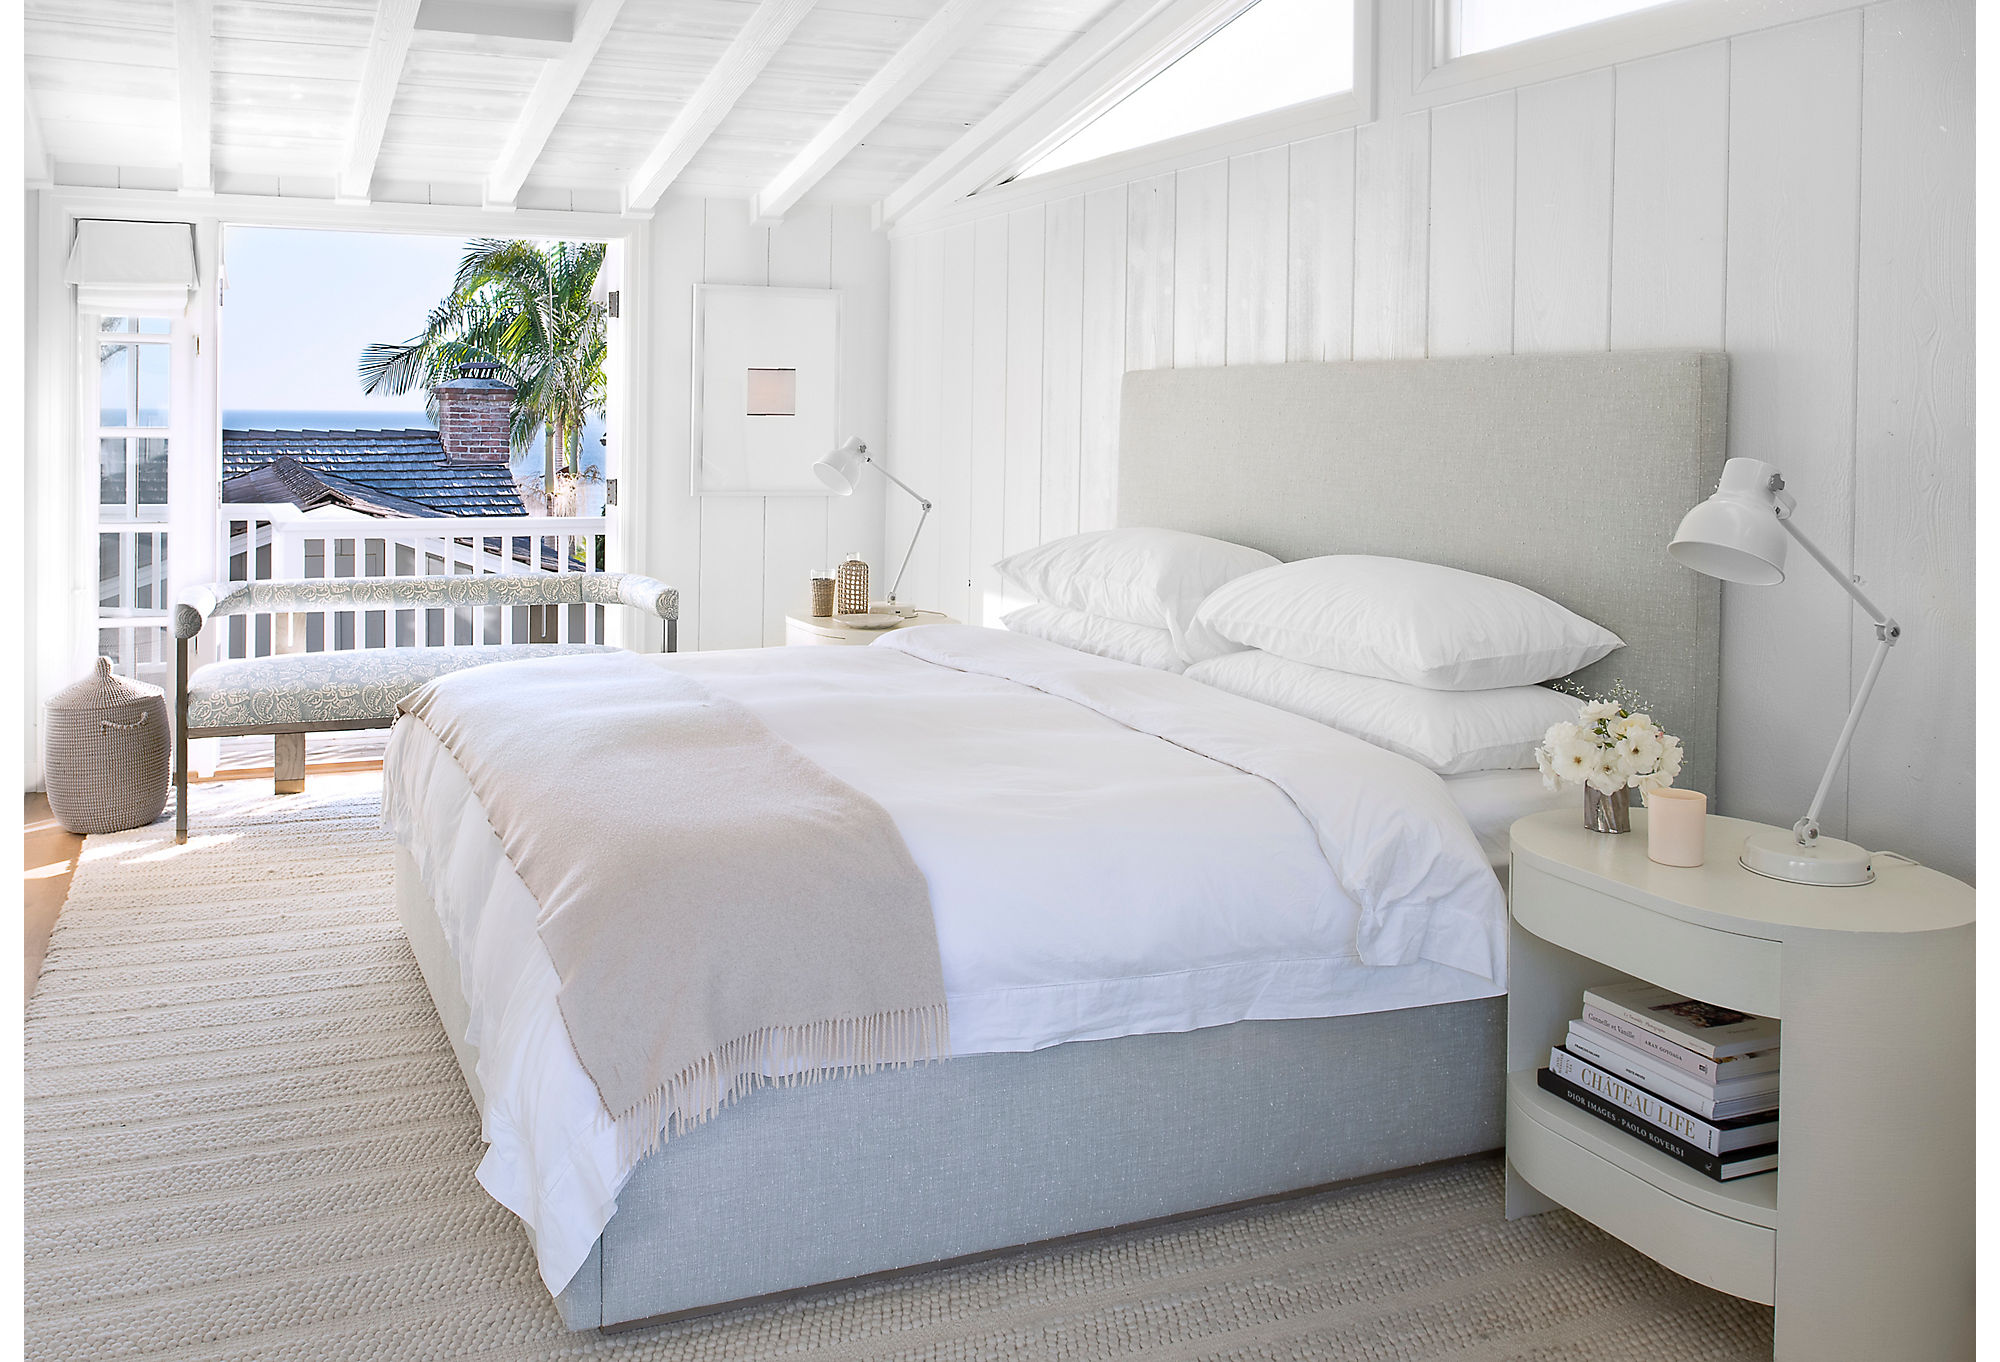 """""""We were going for a spalike atmosphere,"""" says Marea of the main bedroom. Bright light floods the shiplap-laden room. A custom wool rug provides comfort underfoot. """"The pattern is almost like a fisherman's sweater,"""" says Marea. The bed, upholstered in blue linen, is also custom."""